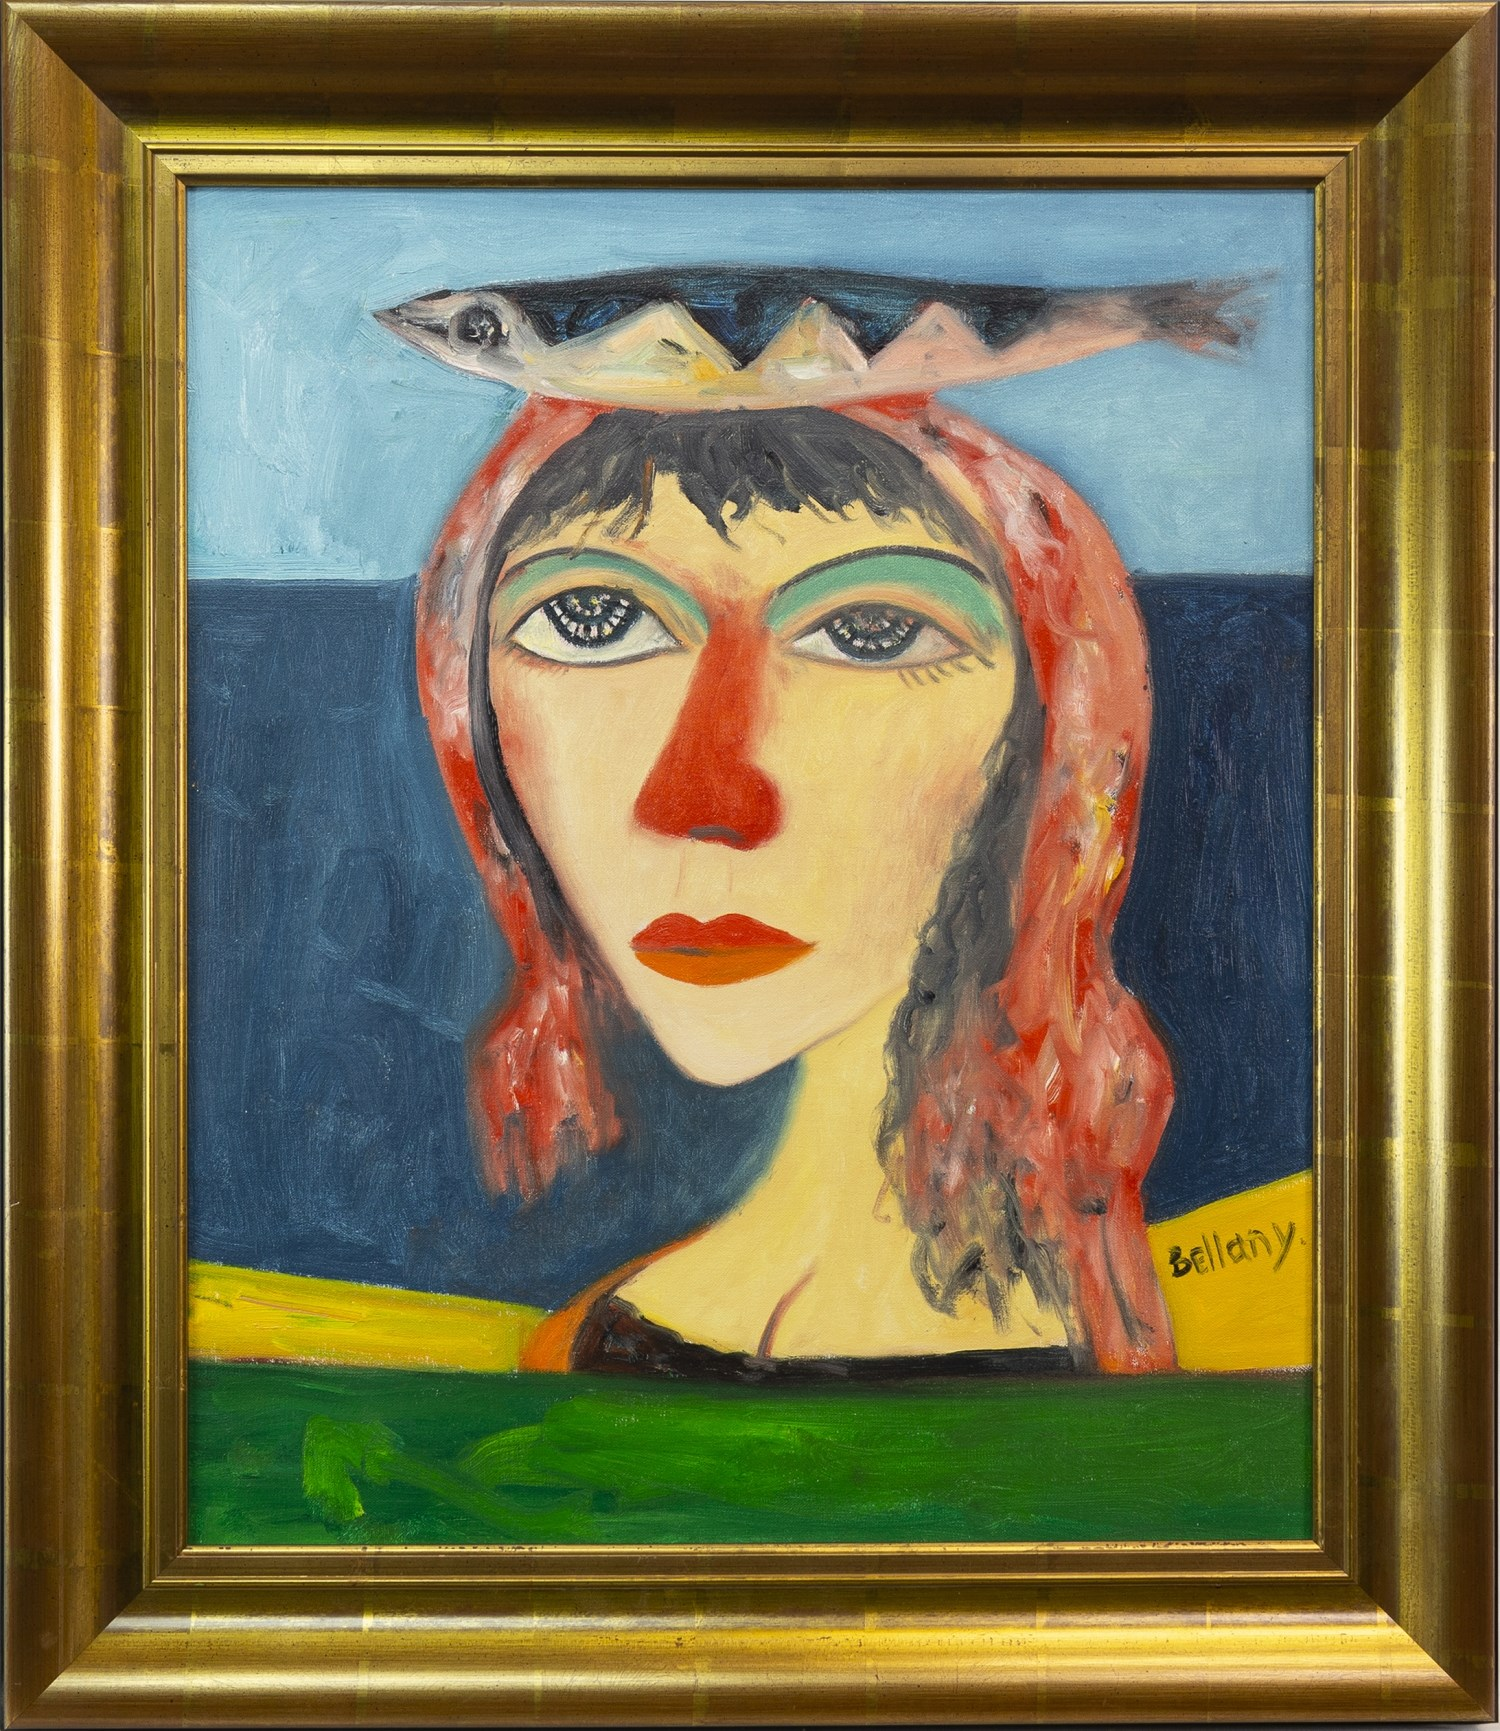 Lot 9 - NORTH SEA MAIDEN, AN OIL ON CANVAS BY JOHN BELLANY